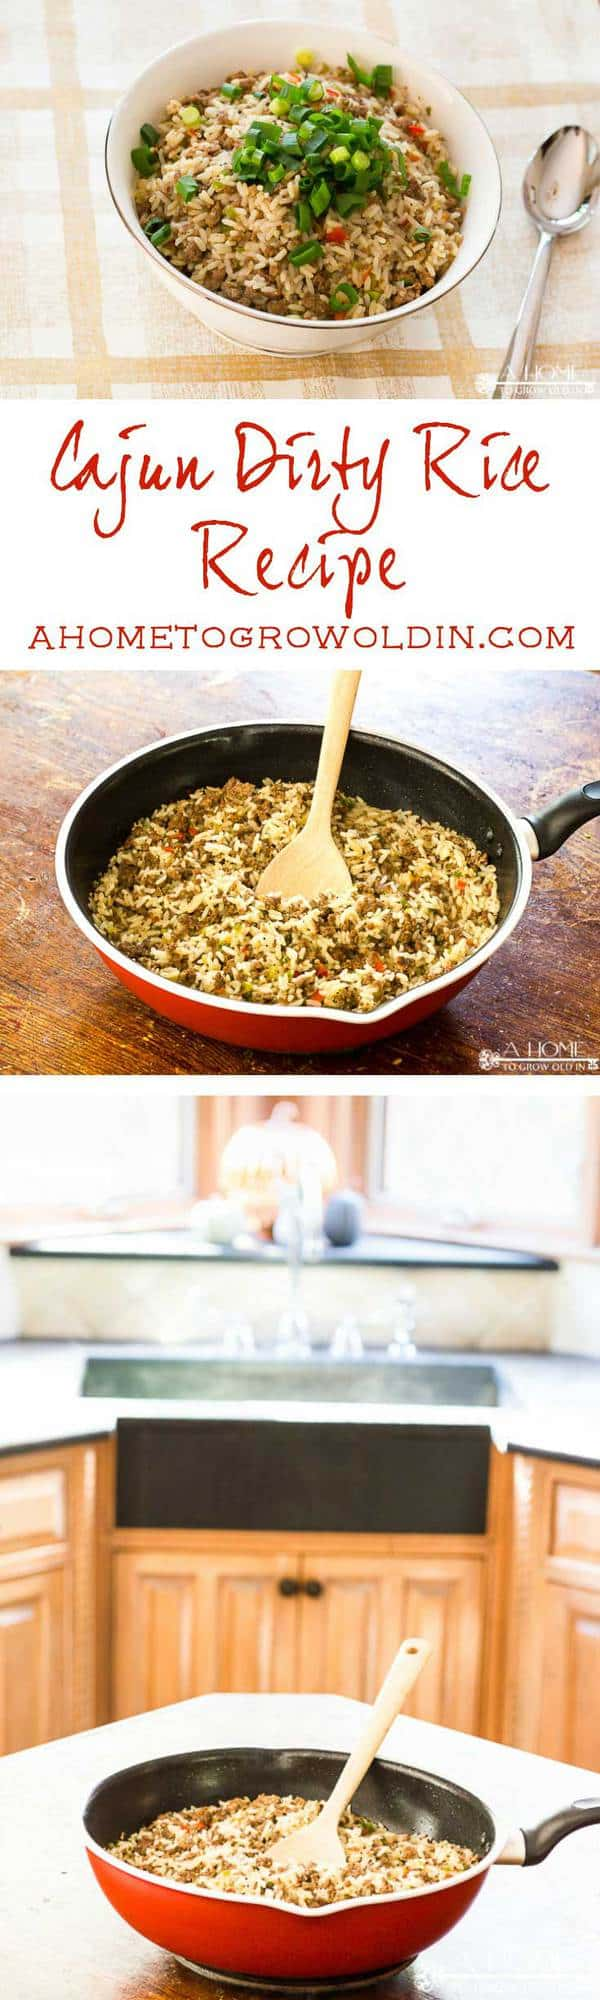 Check out this delicious recipe for cajun dirty rice! It's a great make-ahead side dish for Thanksgiving, Christmas, or any family meal. Perfect with your fried turkey! Pin this for the holidays!